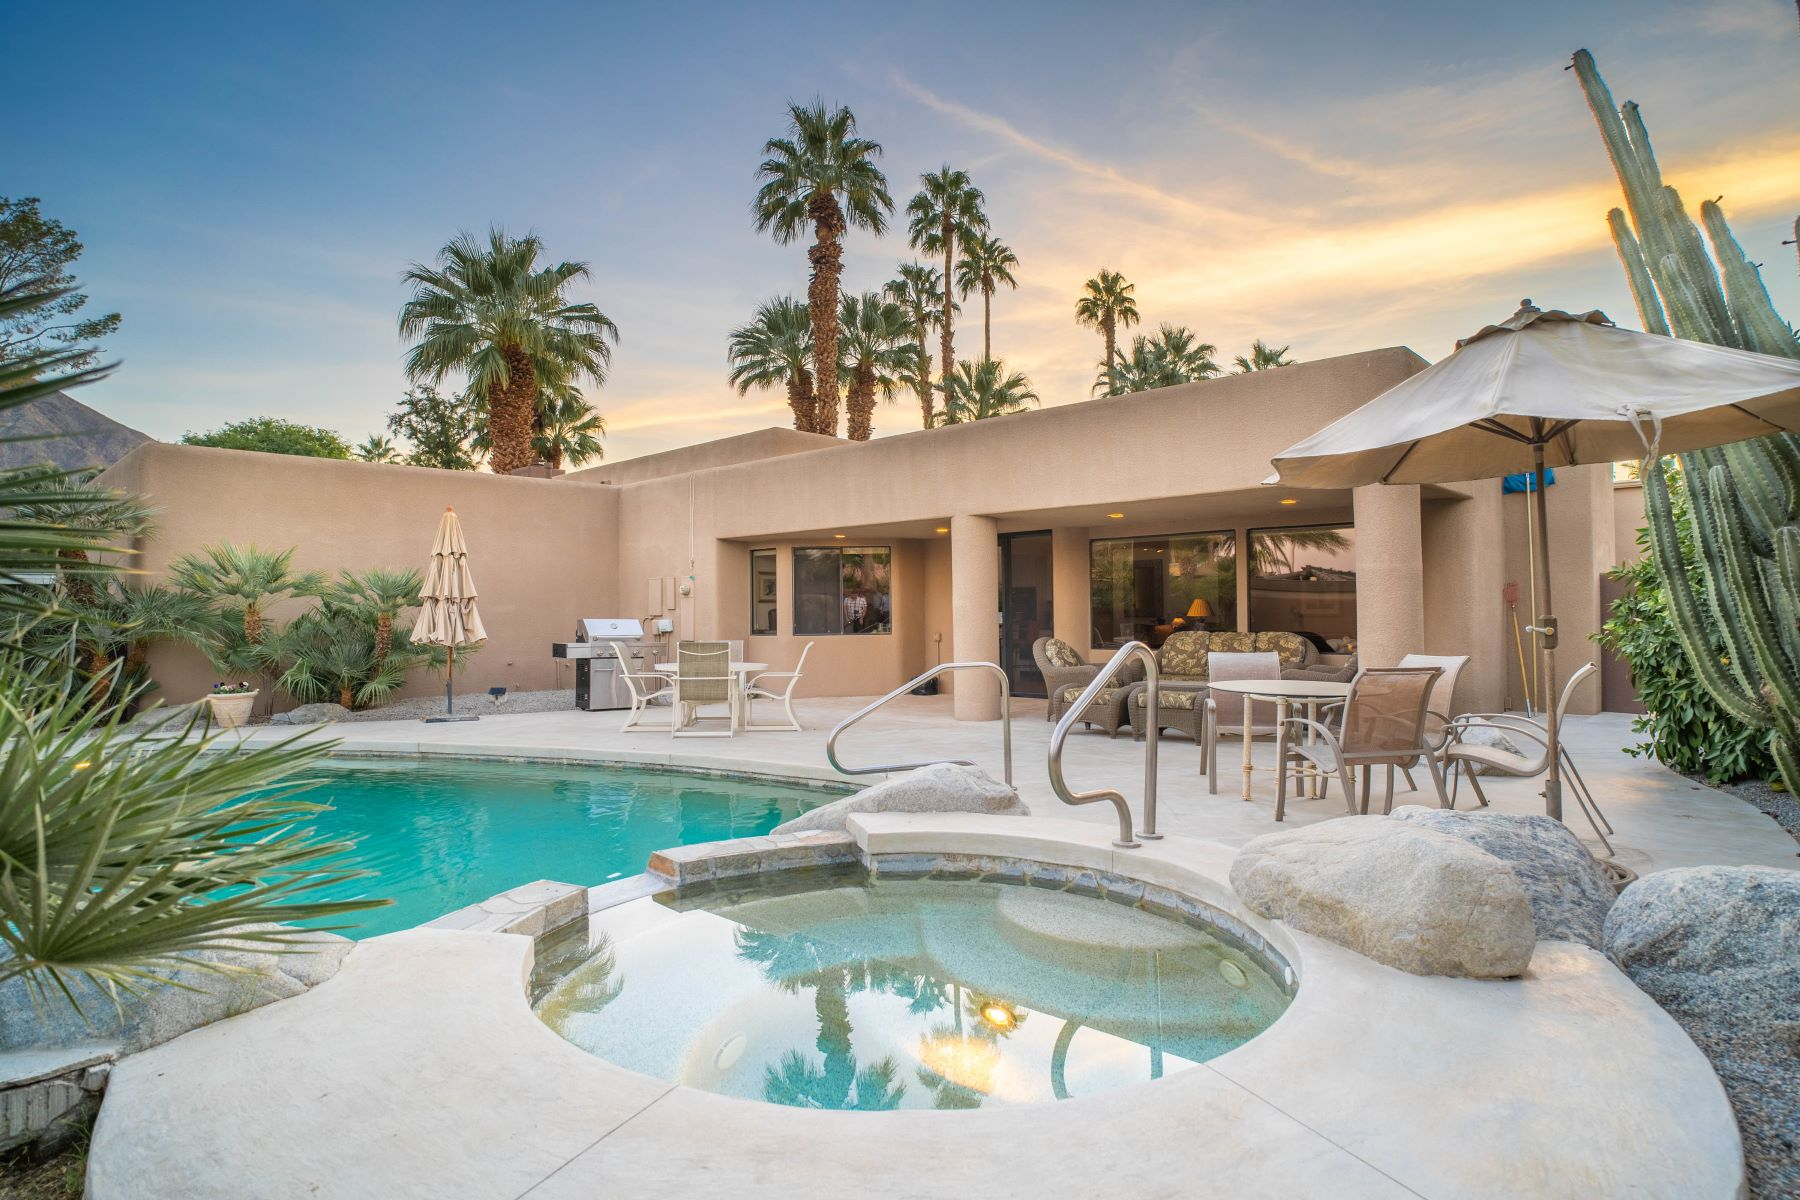 Single Family Homes for Sale at 75840 Altamira Drive Indian Wells, California 92210 United States